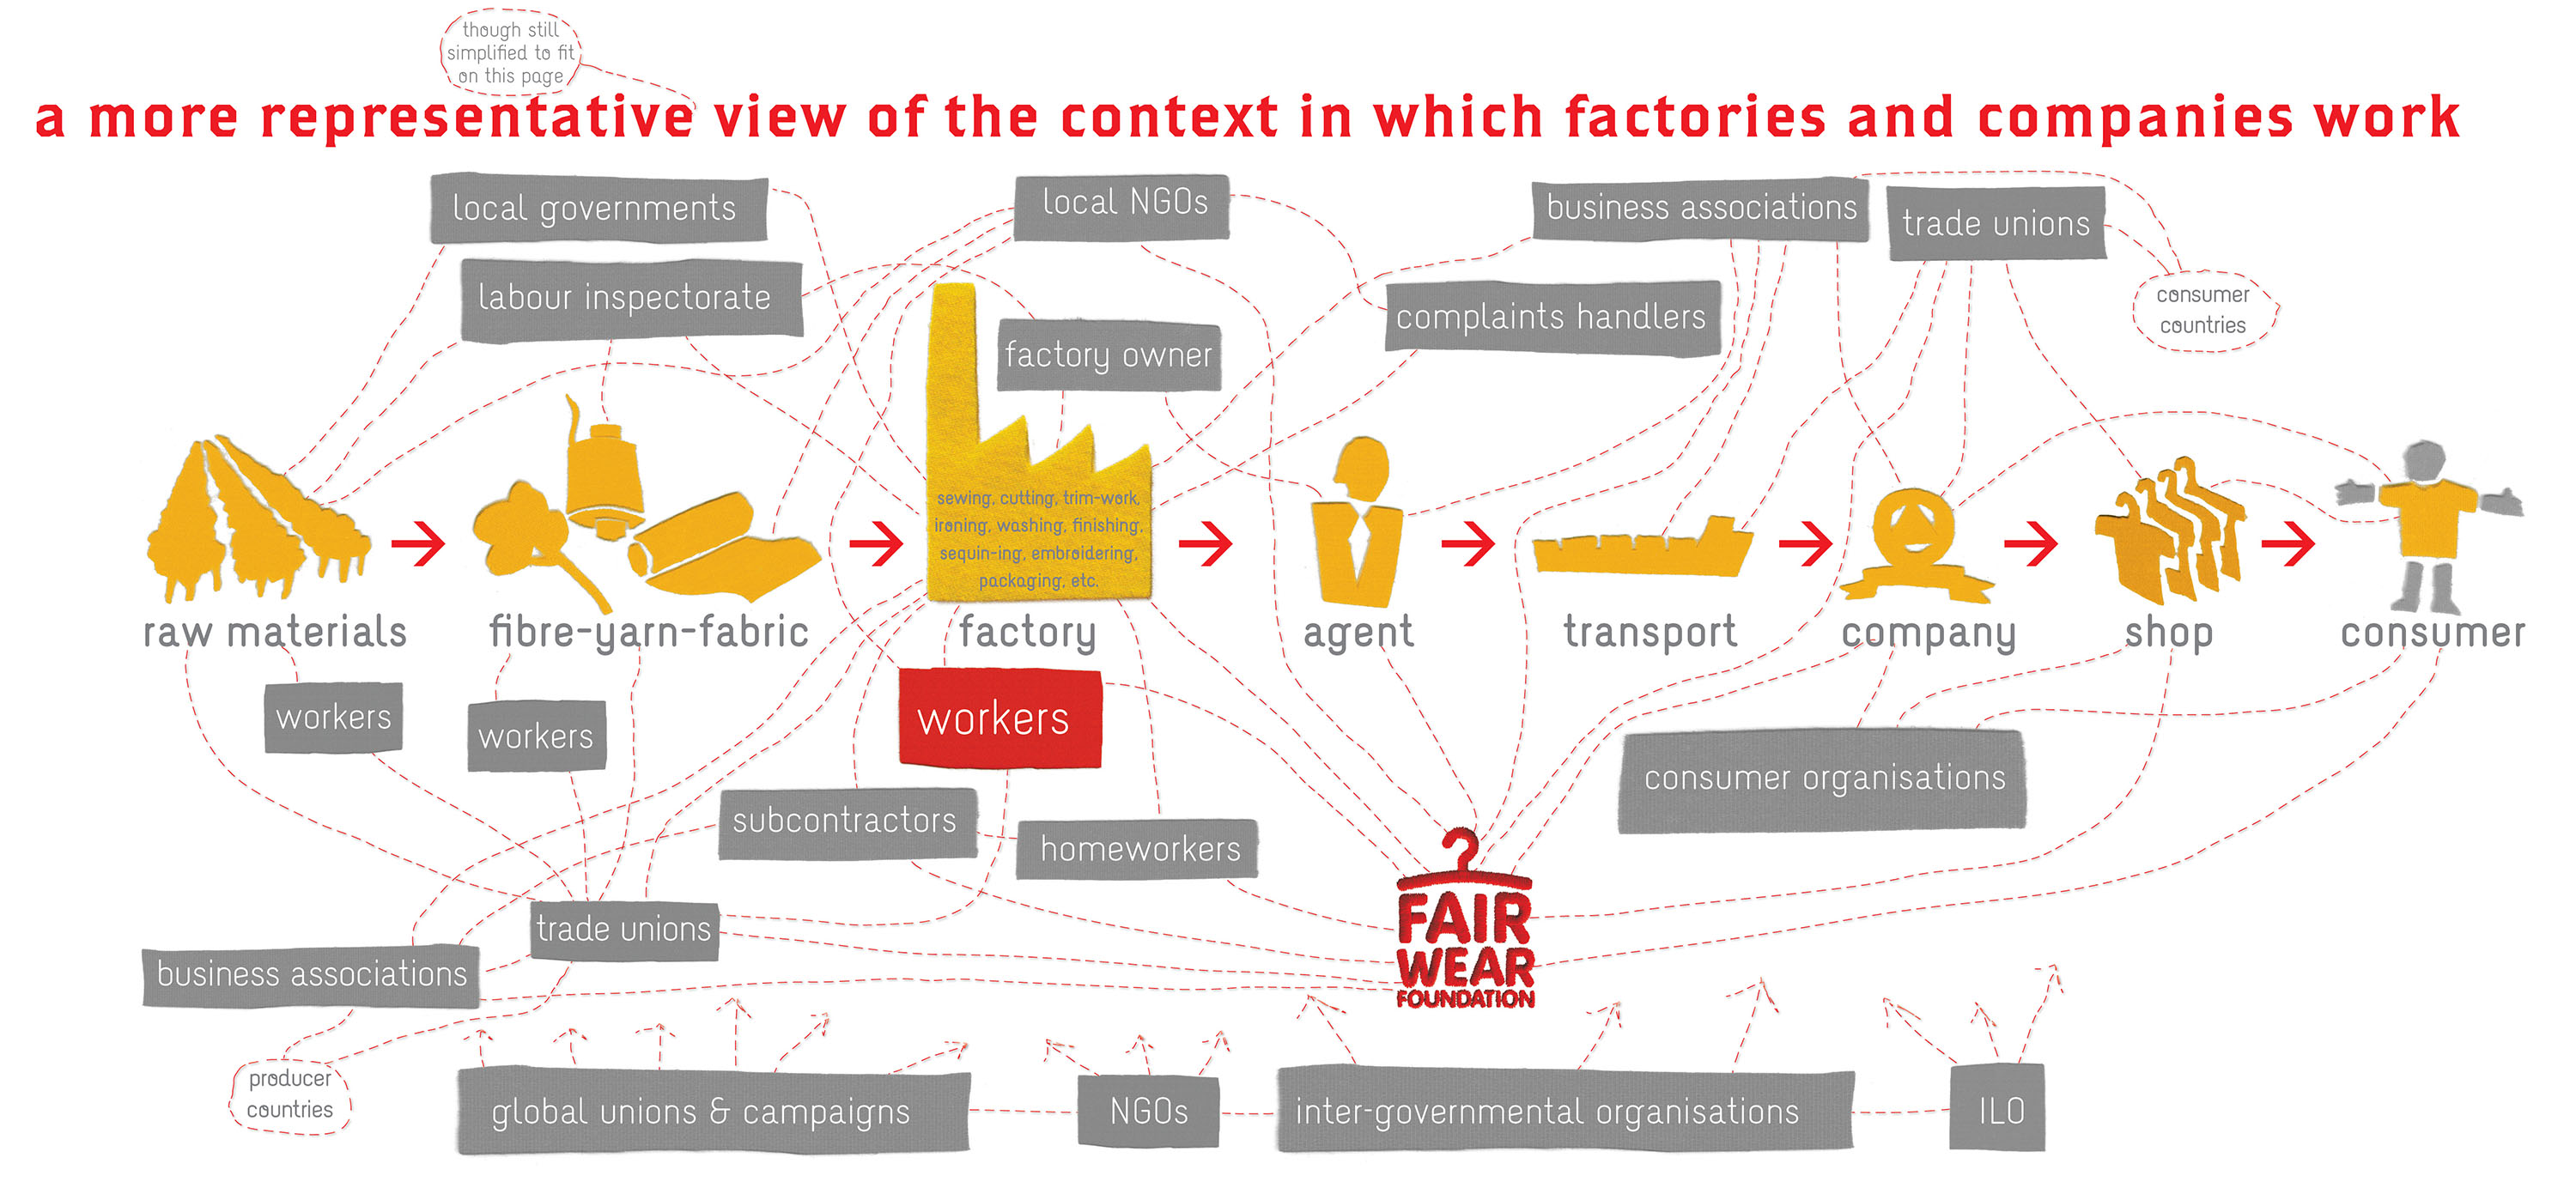 supply chain management and fair trade Read this essay on supply chain management and fair trade come browse our large digital warehouse of free sample essays get the knowledge you need in order to pass your classes and more.